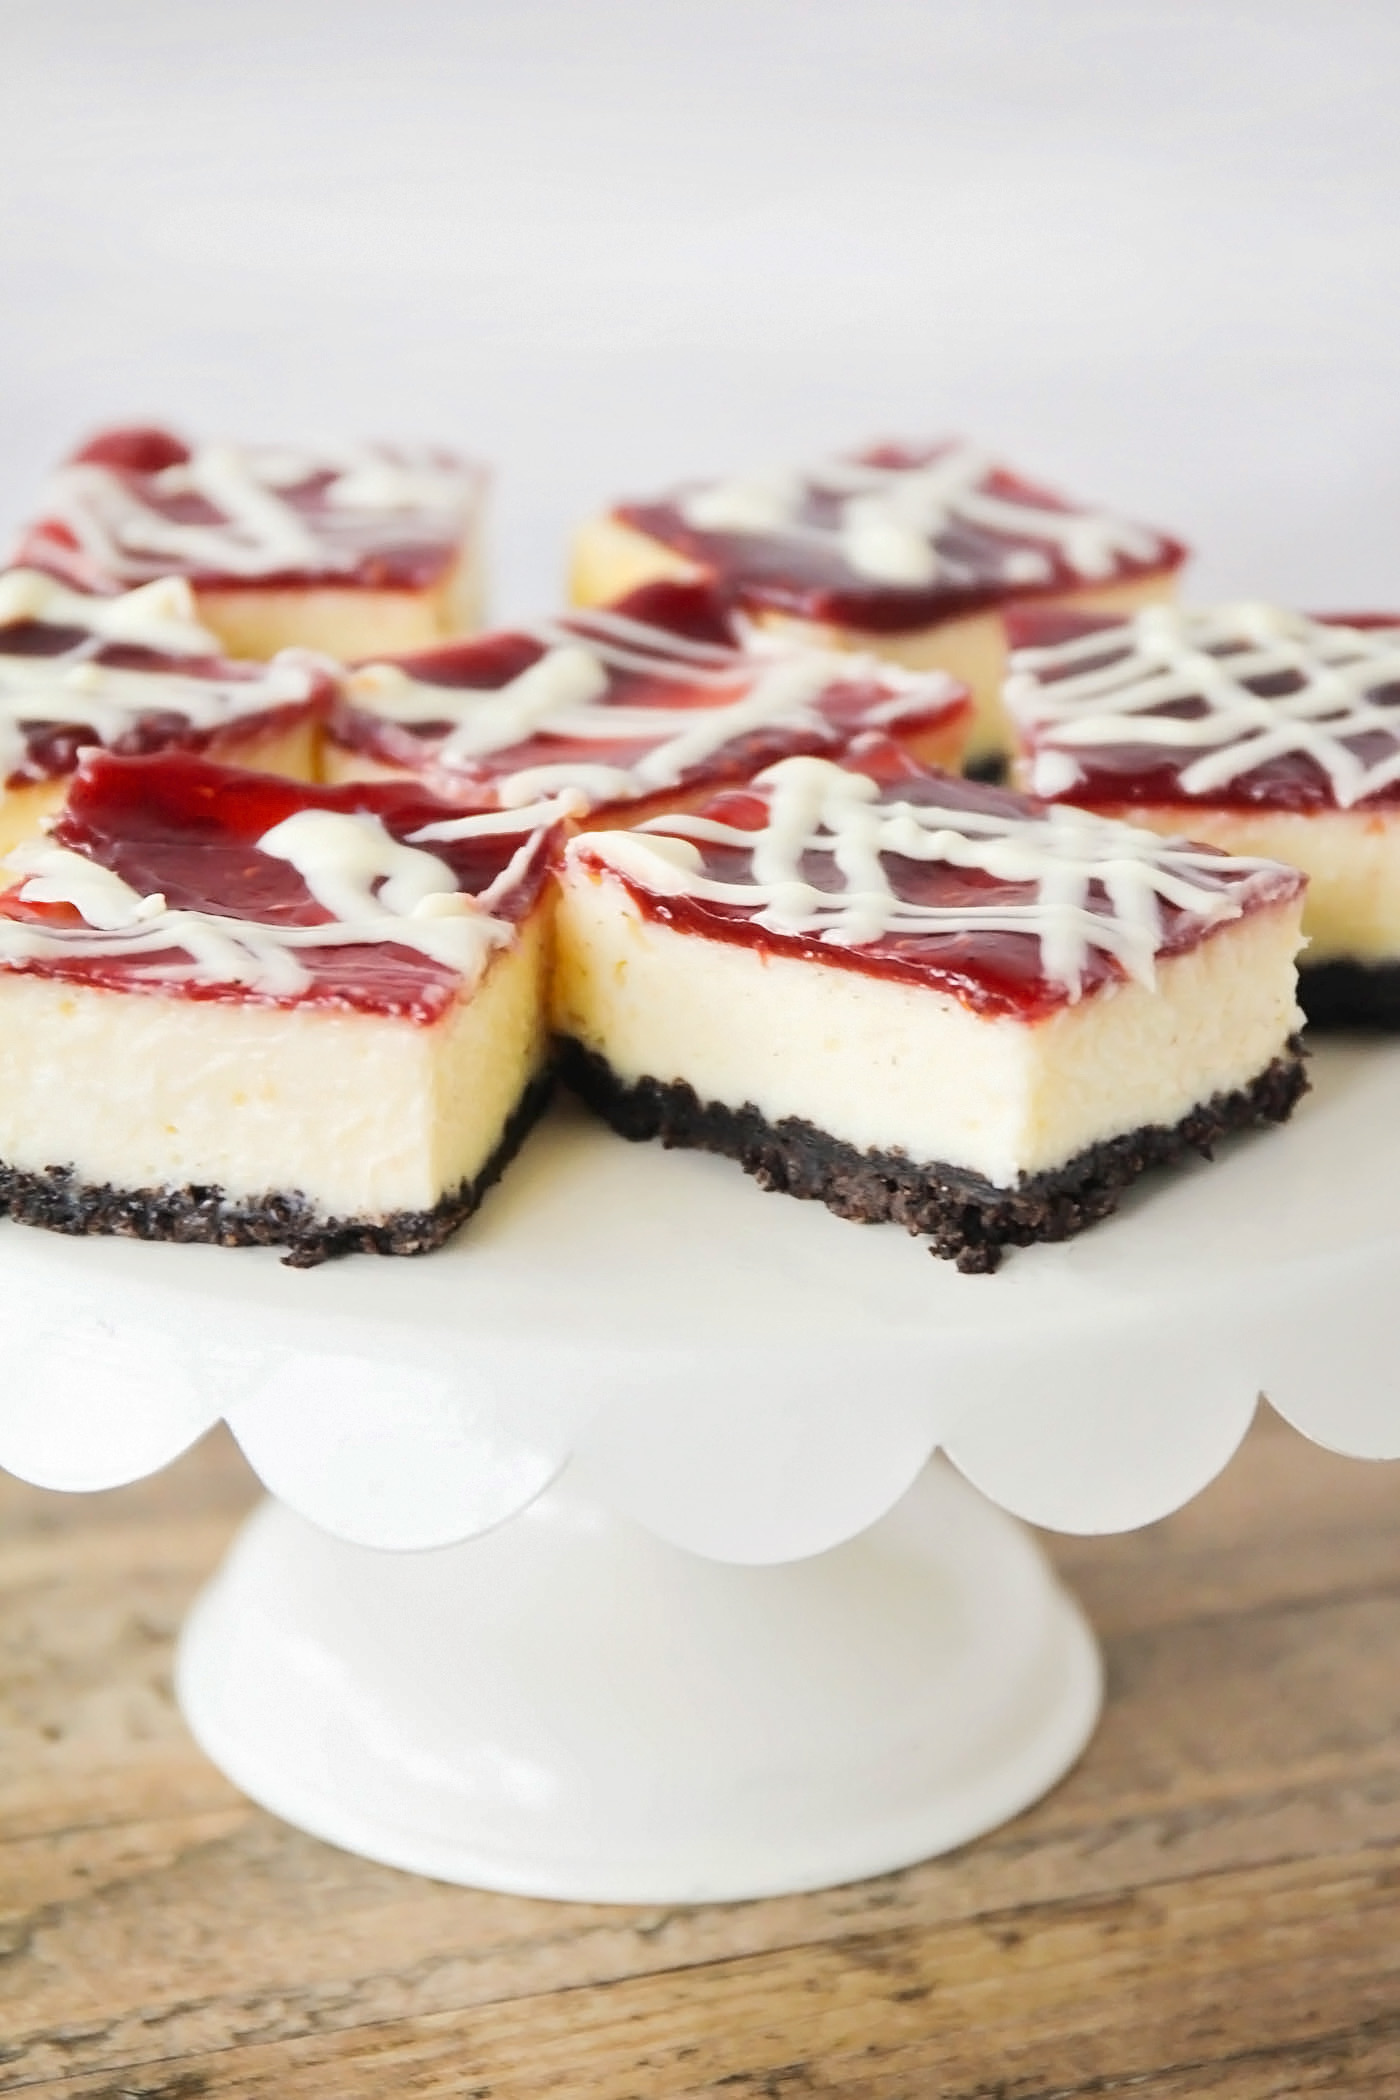 These White Chocolate Raspberry Cheesecake Bars may look fancy but they're easy to make! The rich flavors and homemade oreo crust make them hard to resist.